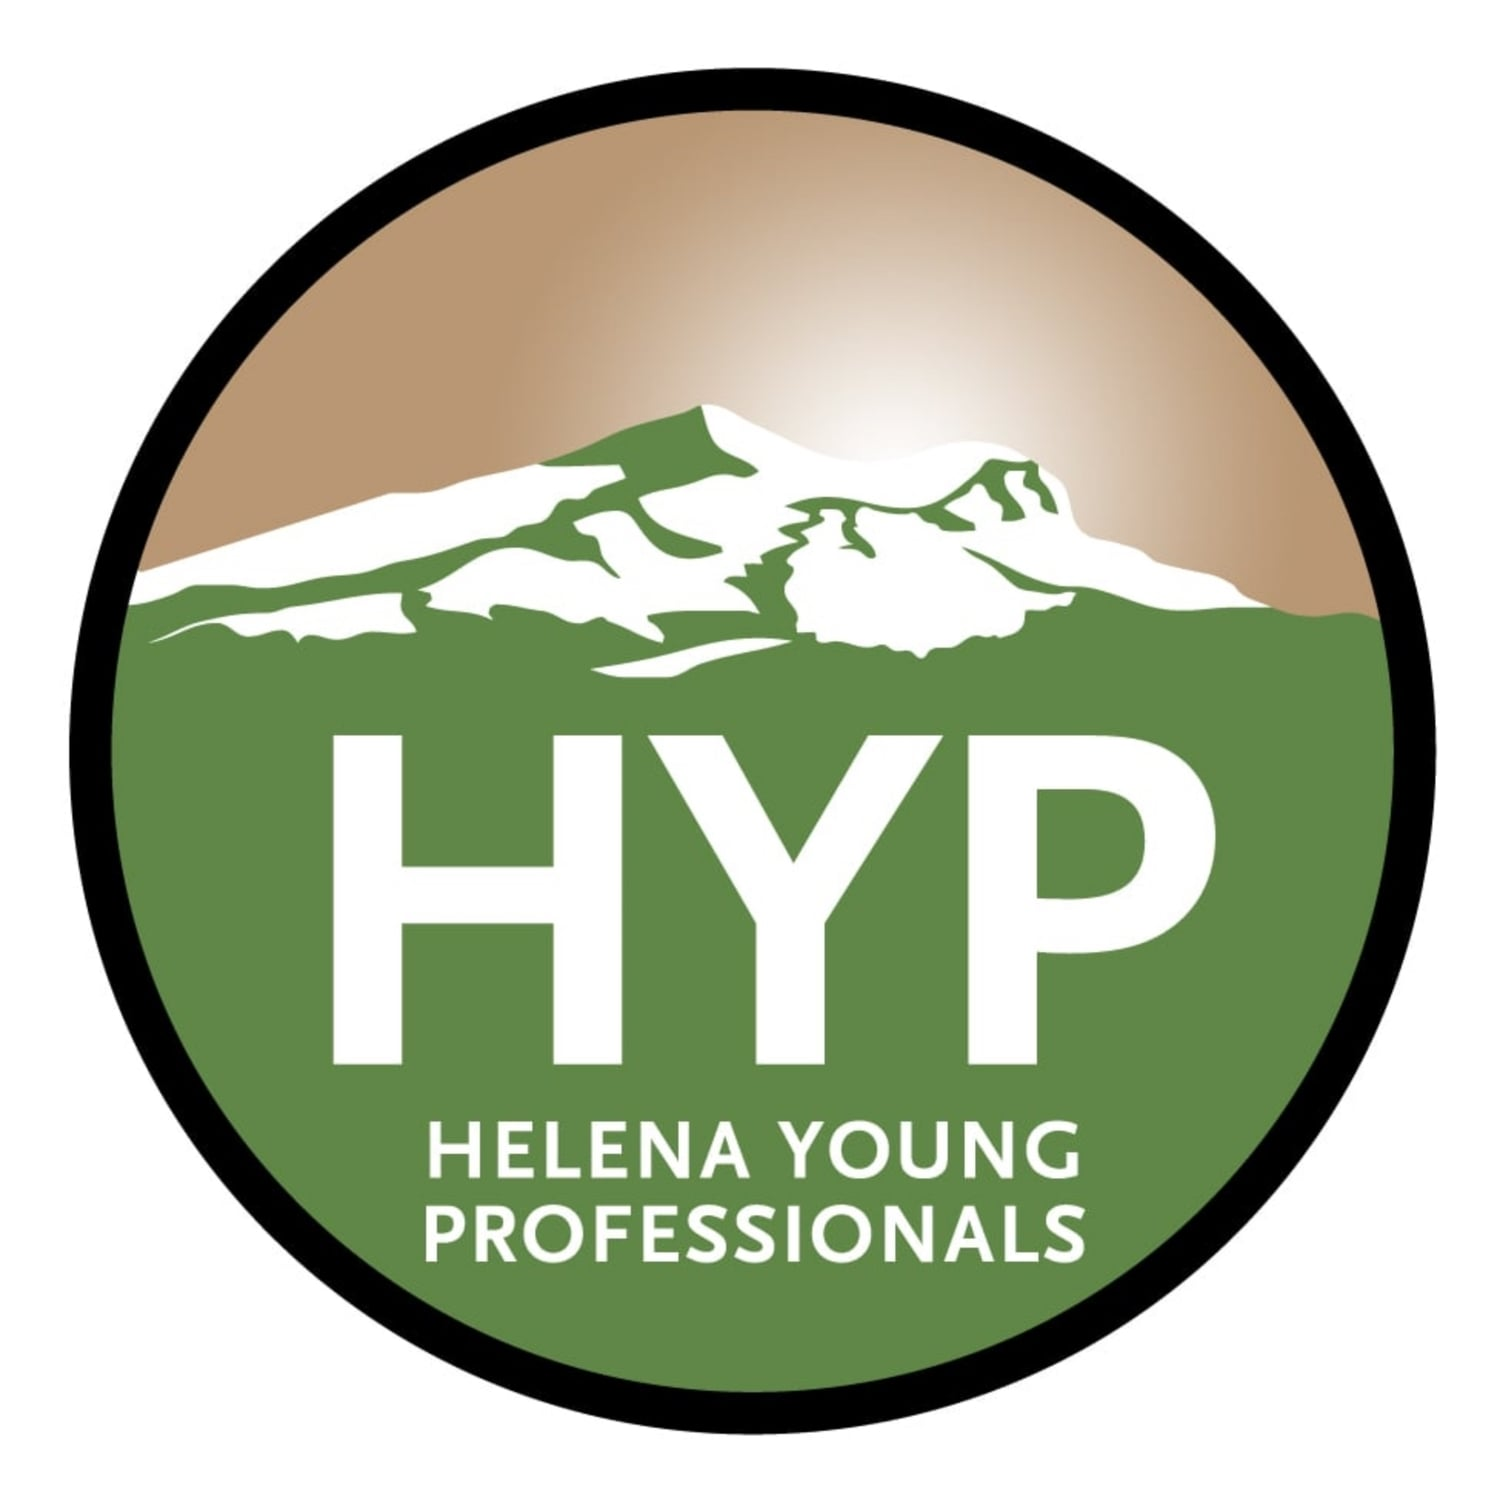 Helena Young Professionals